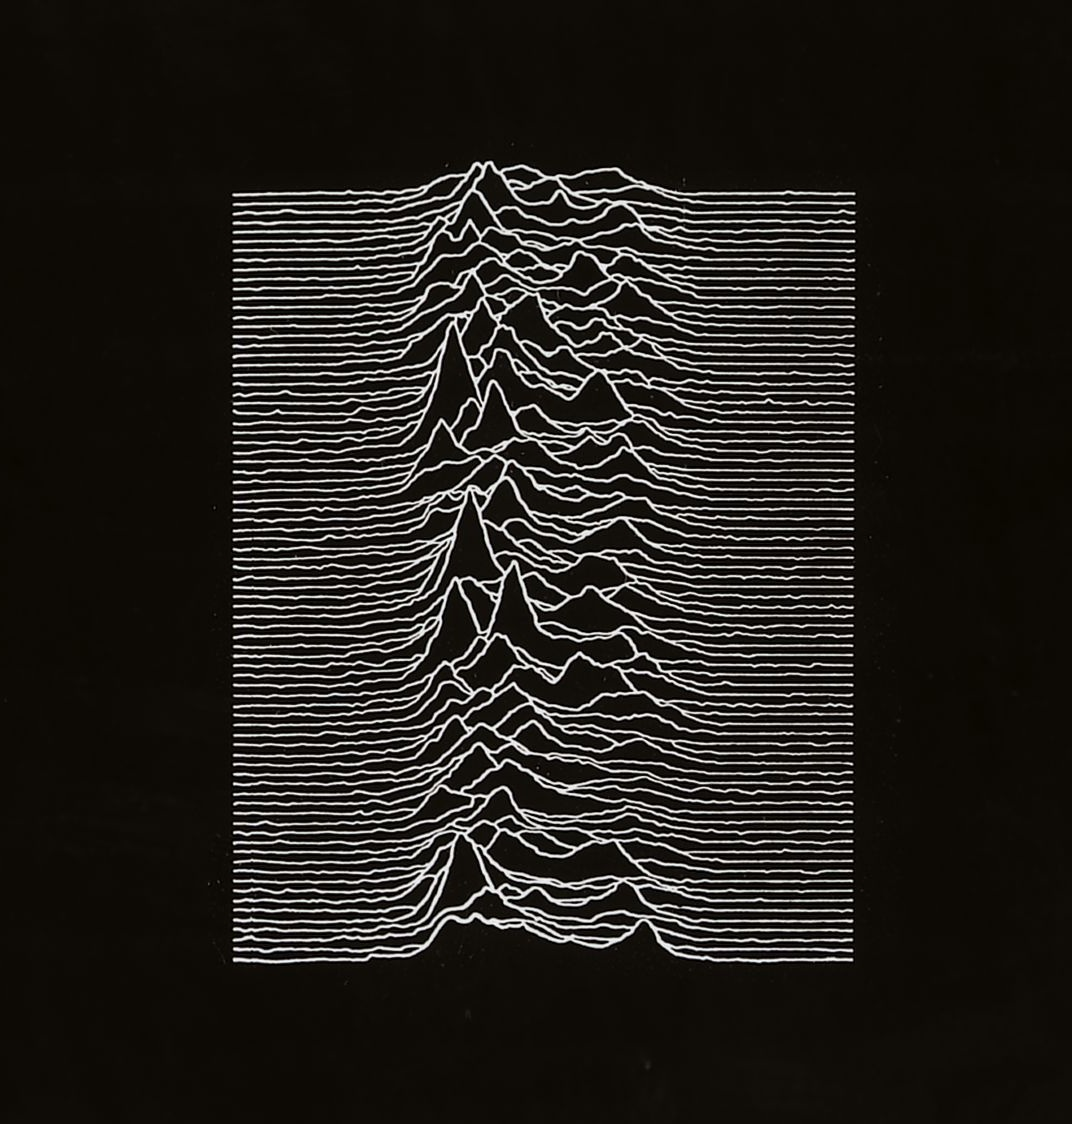 http://2.bp.blogspot.com/-PLD6R0lPauk/T4Vu_xFIrCI/AAAAAAAAAZk/rAqlswgtlEk/s1600/Unknown+pleasures+(Peter+Saville+y+Chris+Mathan).jpg